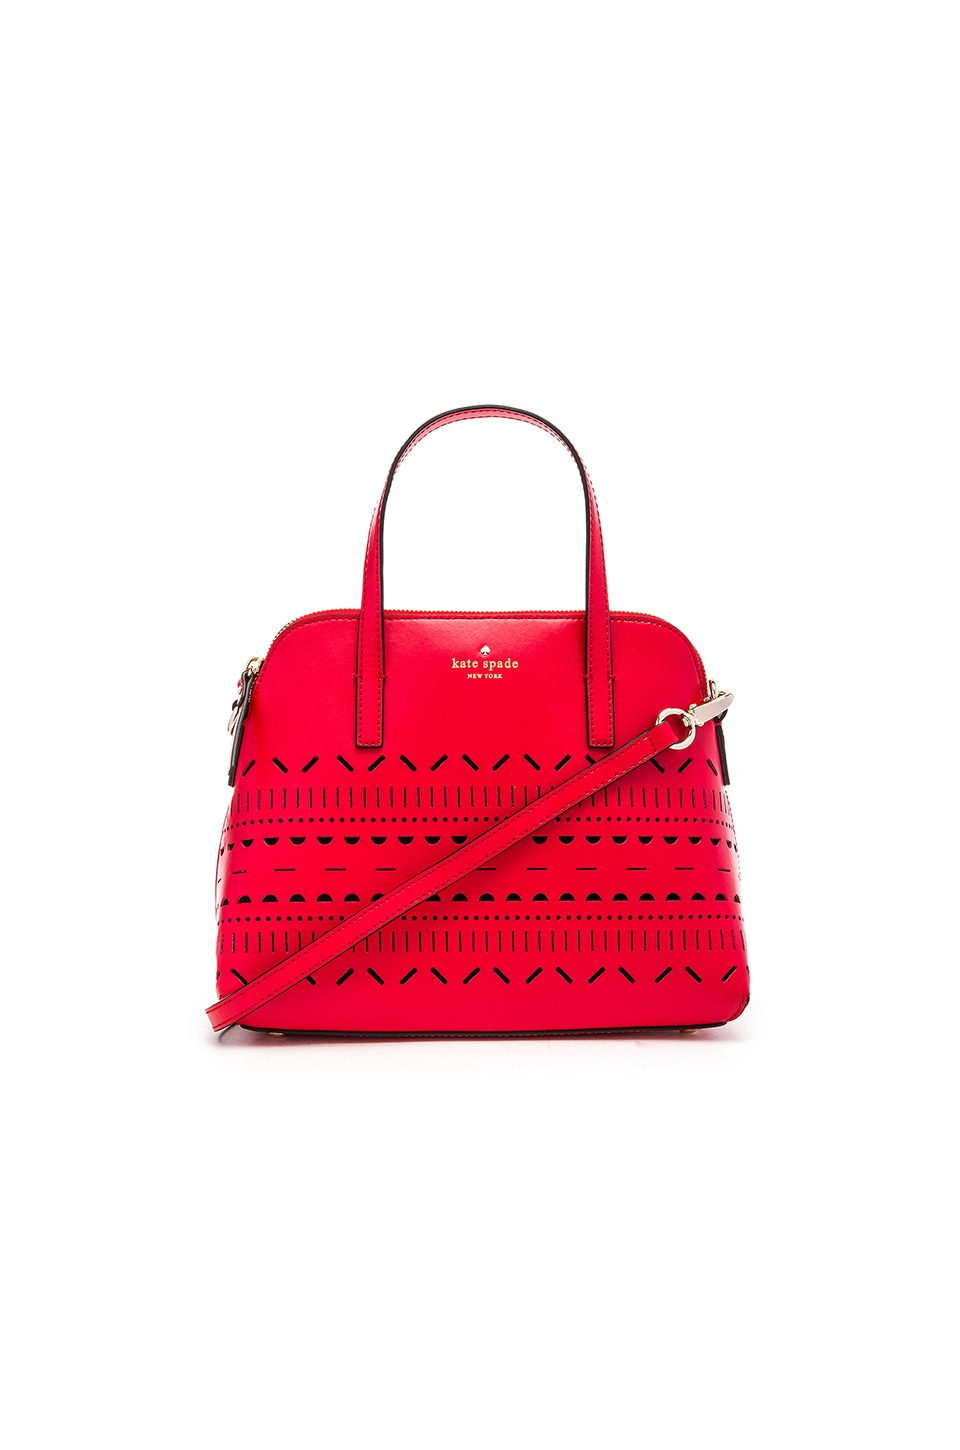 kate spade new york Maise Bag in Cherry Liqueur